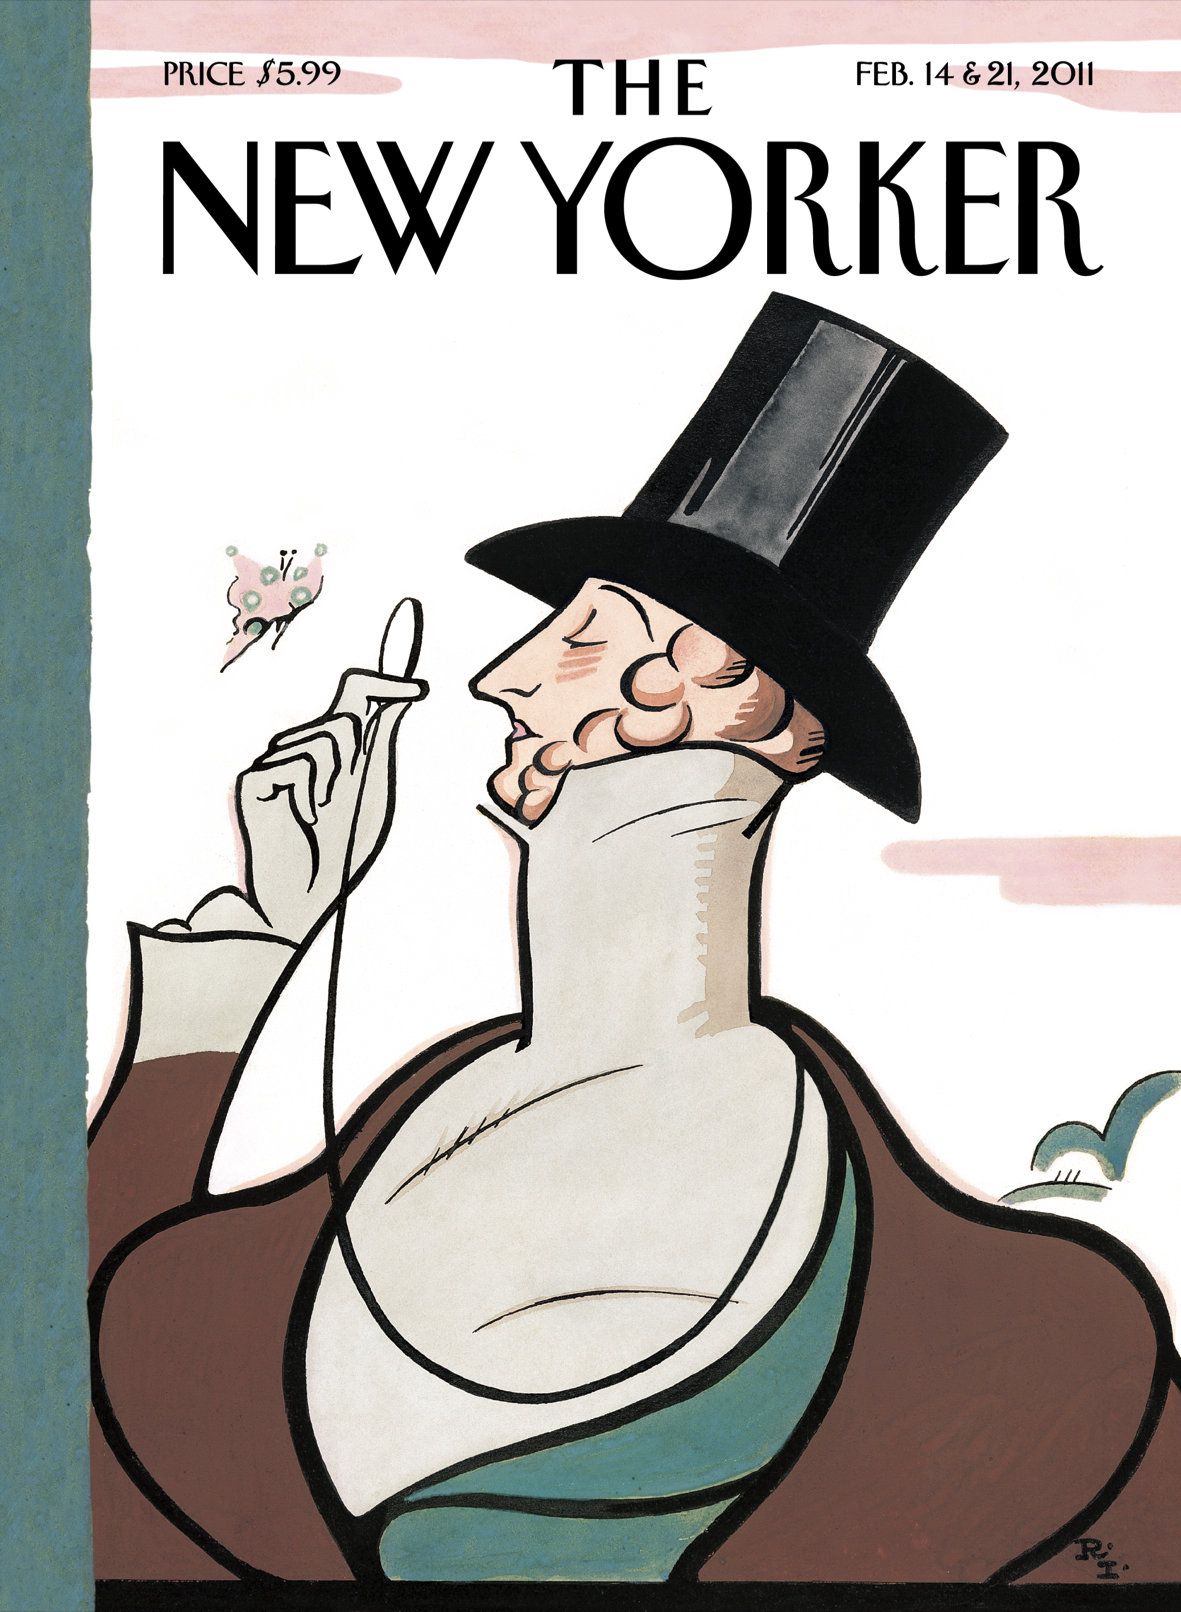 The New Yorker magazine issue cover